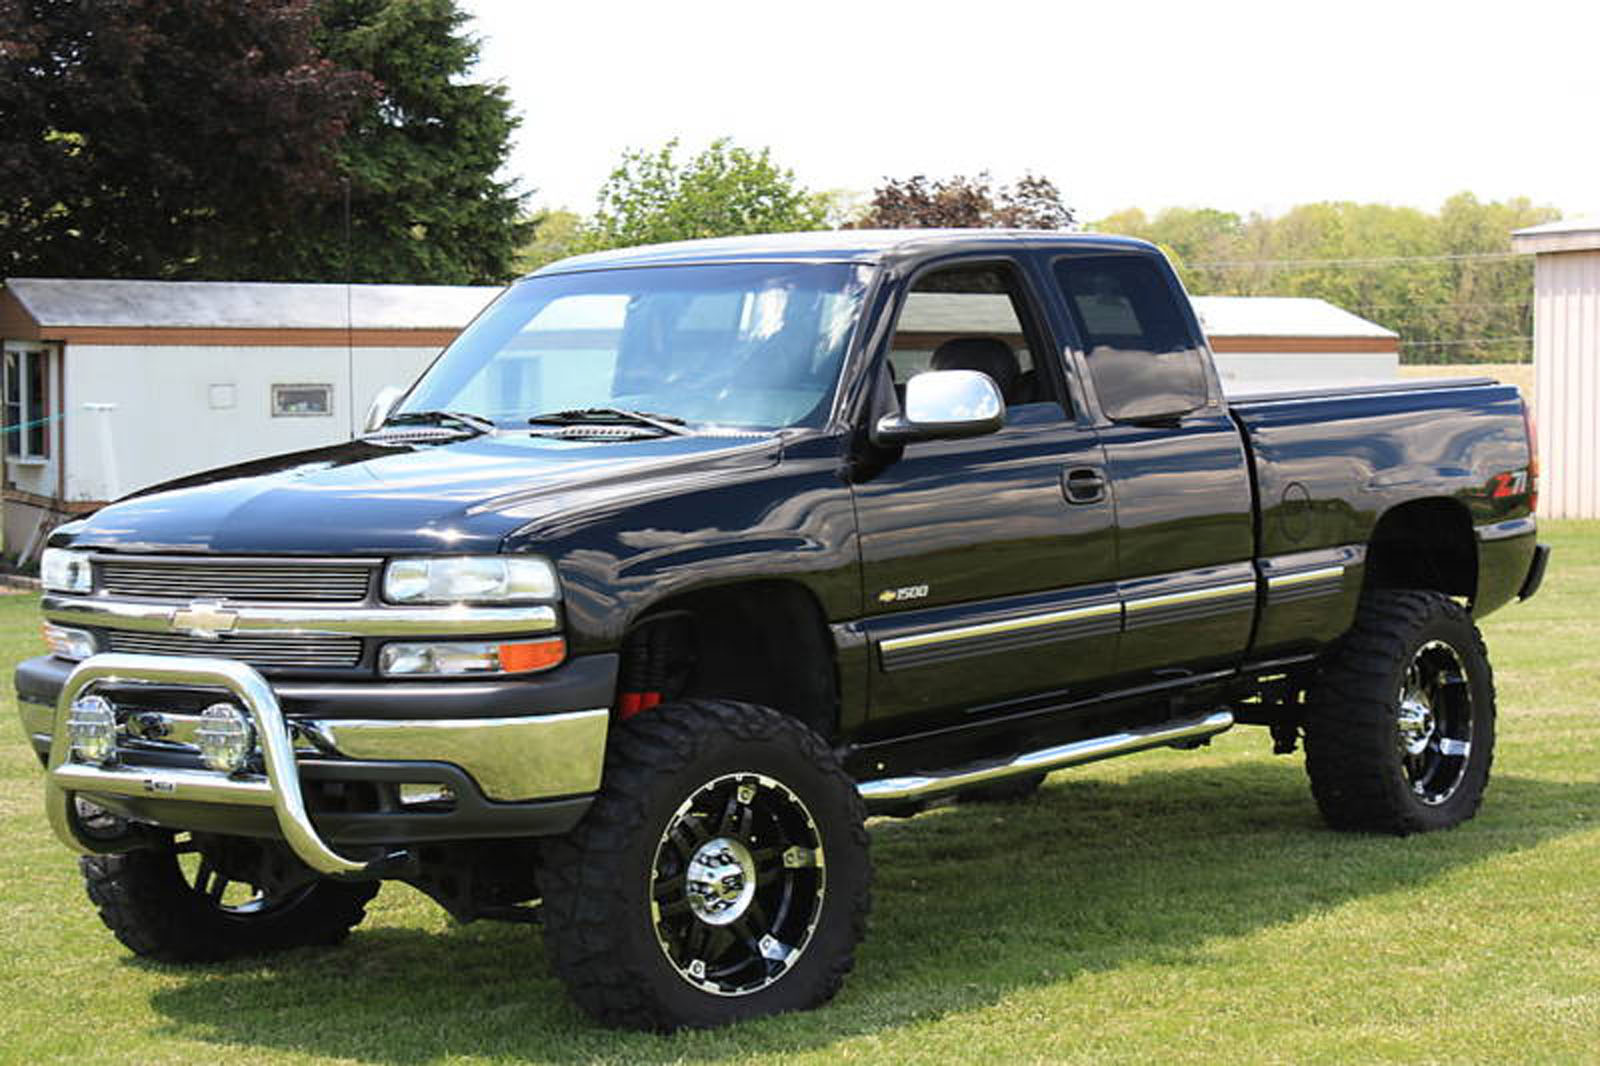 alfa img showing 2000 chevrolet silverado 1500 4x4. Cars Review. Best American Auto & Cars Review